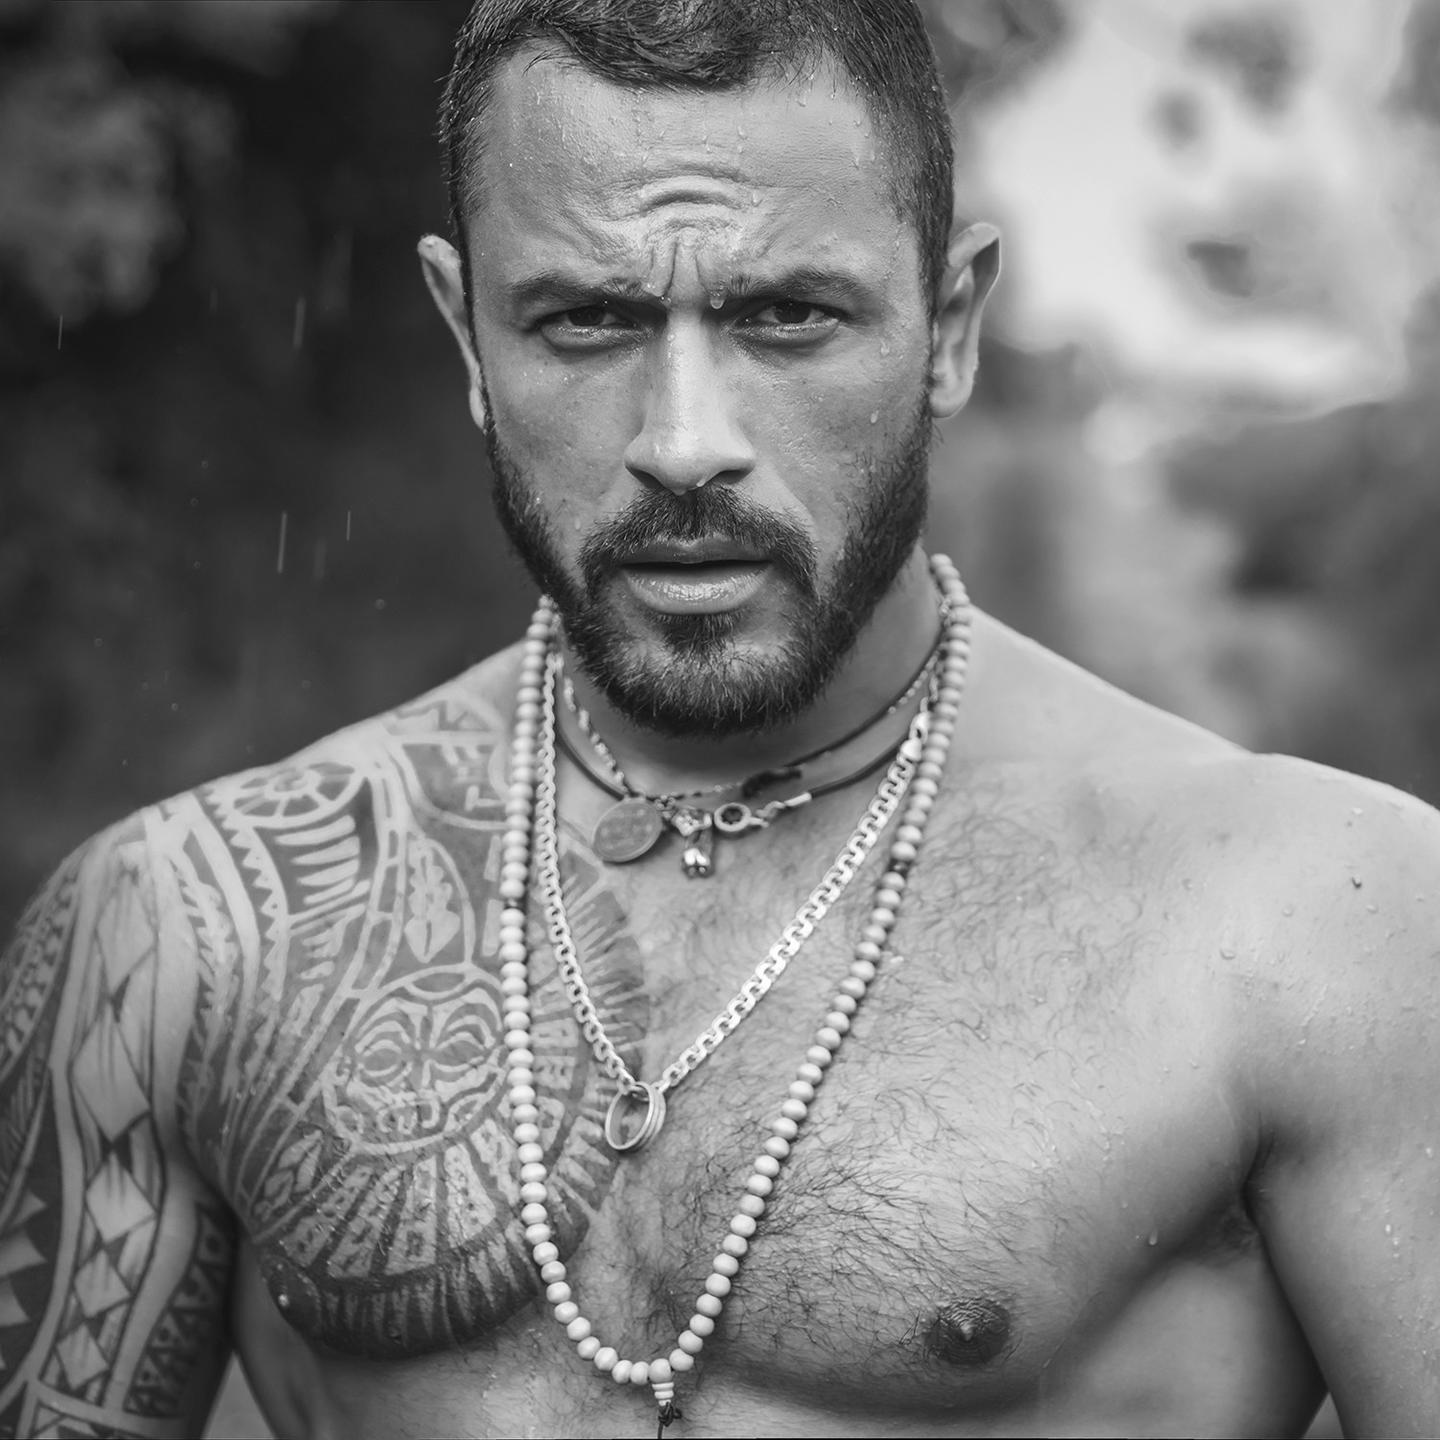 shirtless, tattooed man gazes into the camera with strength and confidence